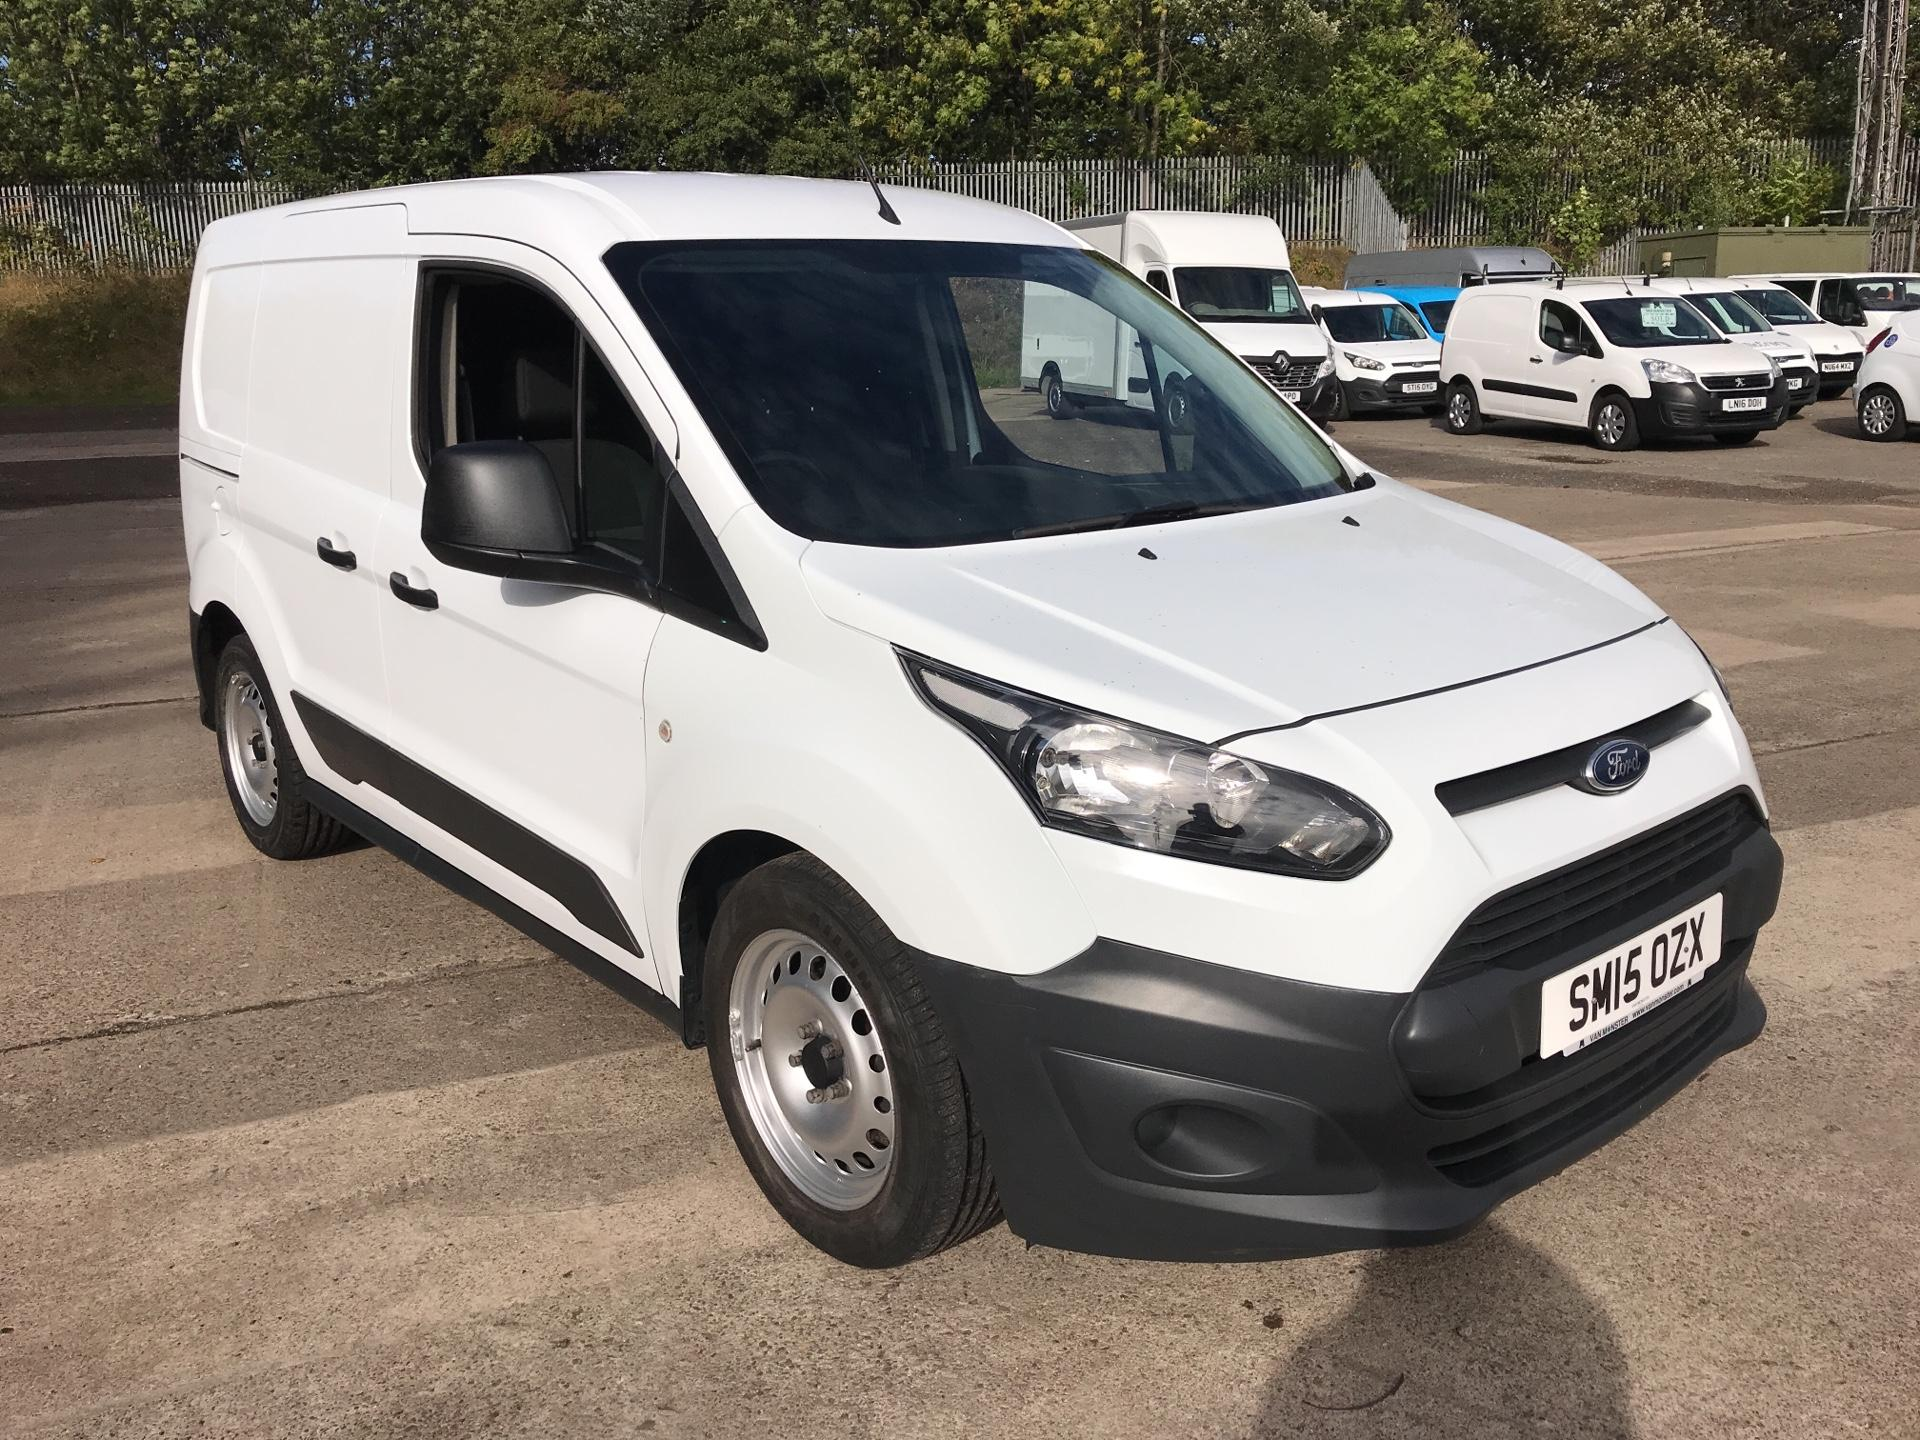 2015 Ford Transit Connect 220 L1 DIESEL 1.6 TDCI 95PS DOUBLE CAB EURO 5 (SM15OZX)